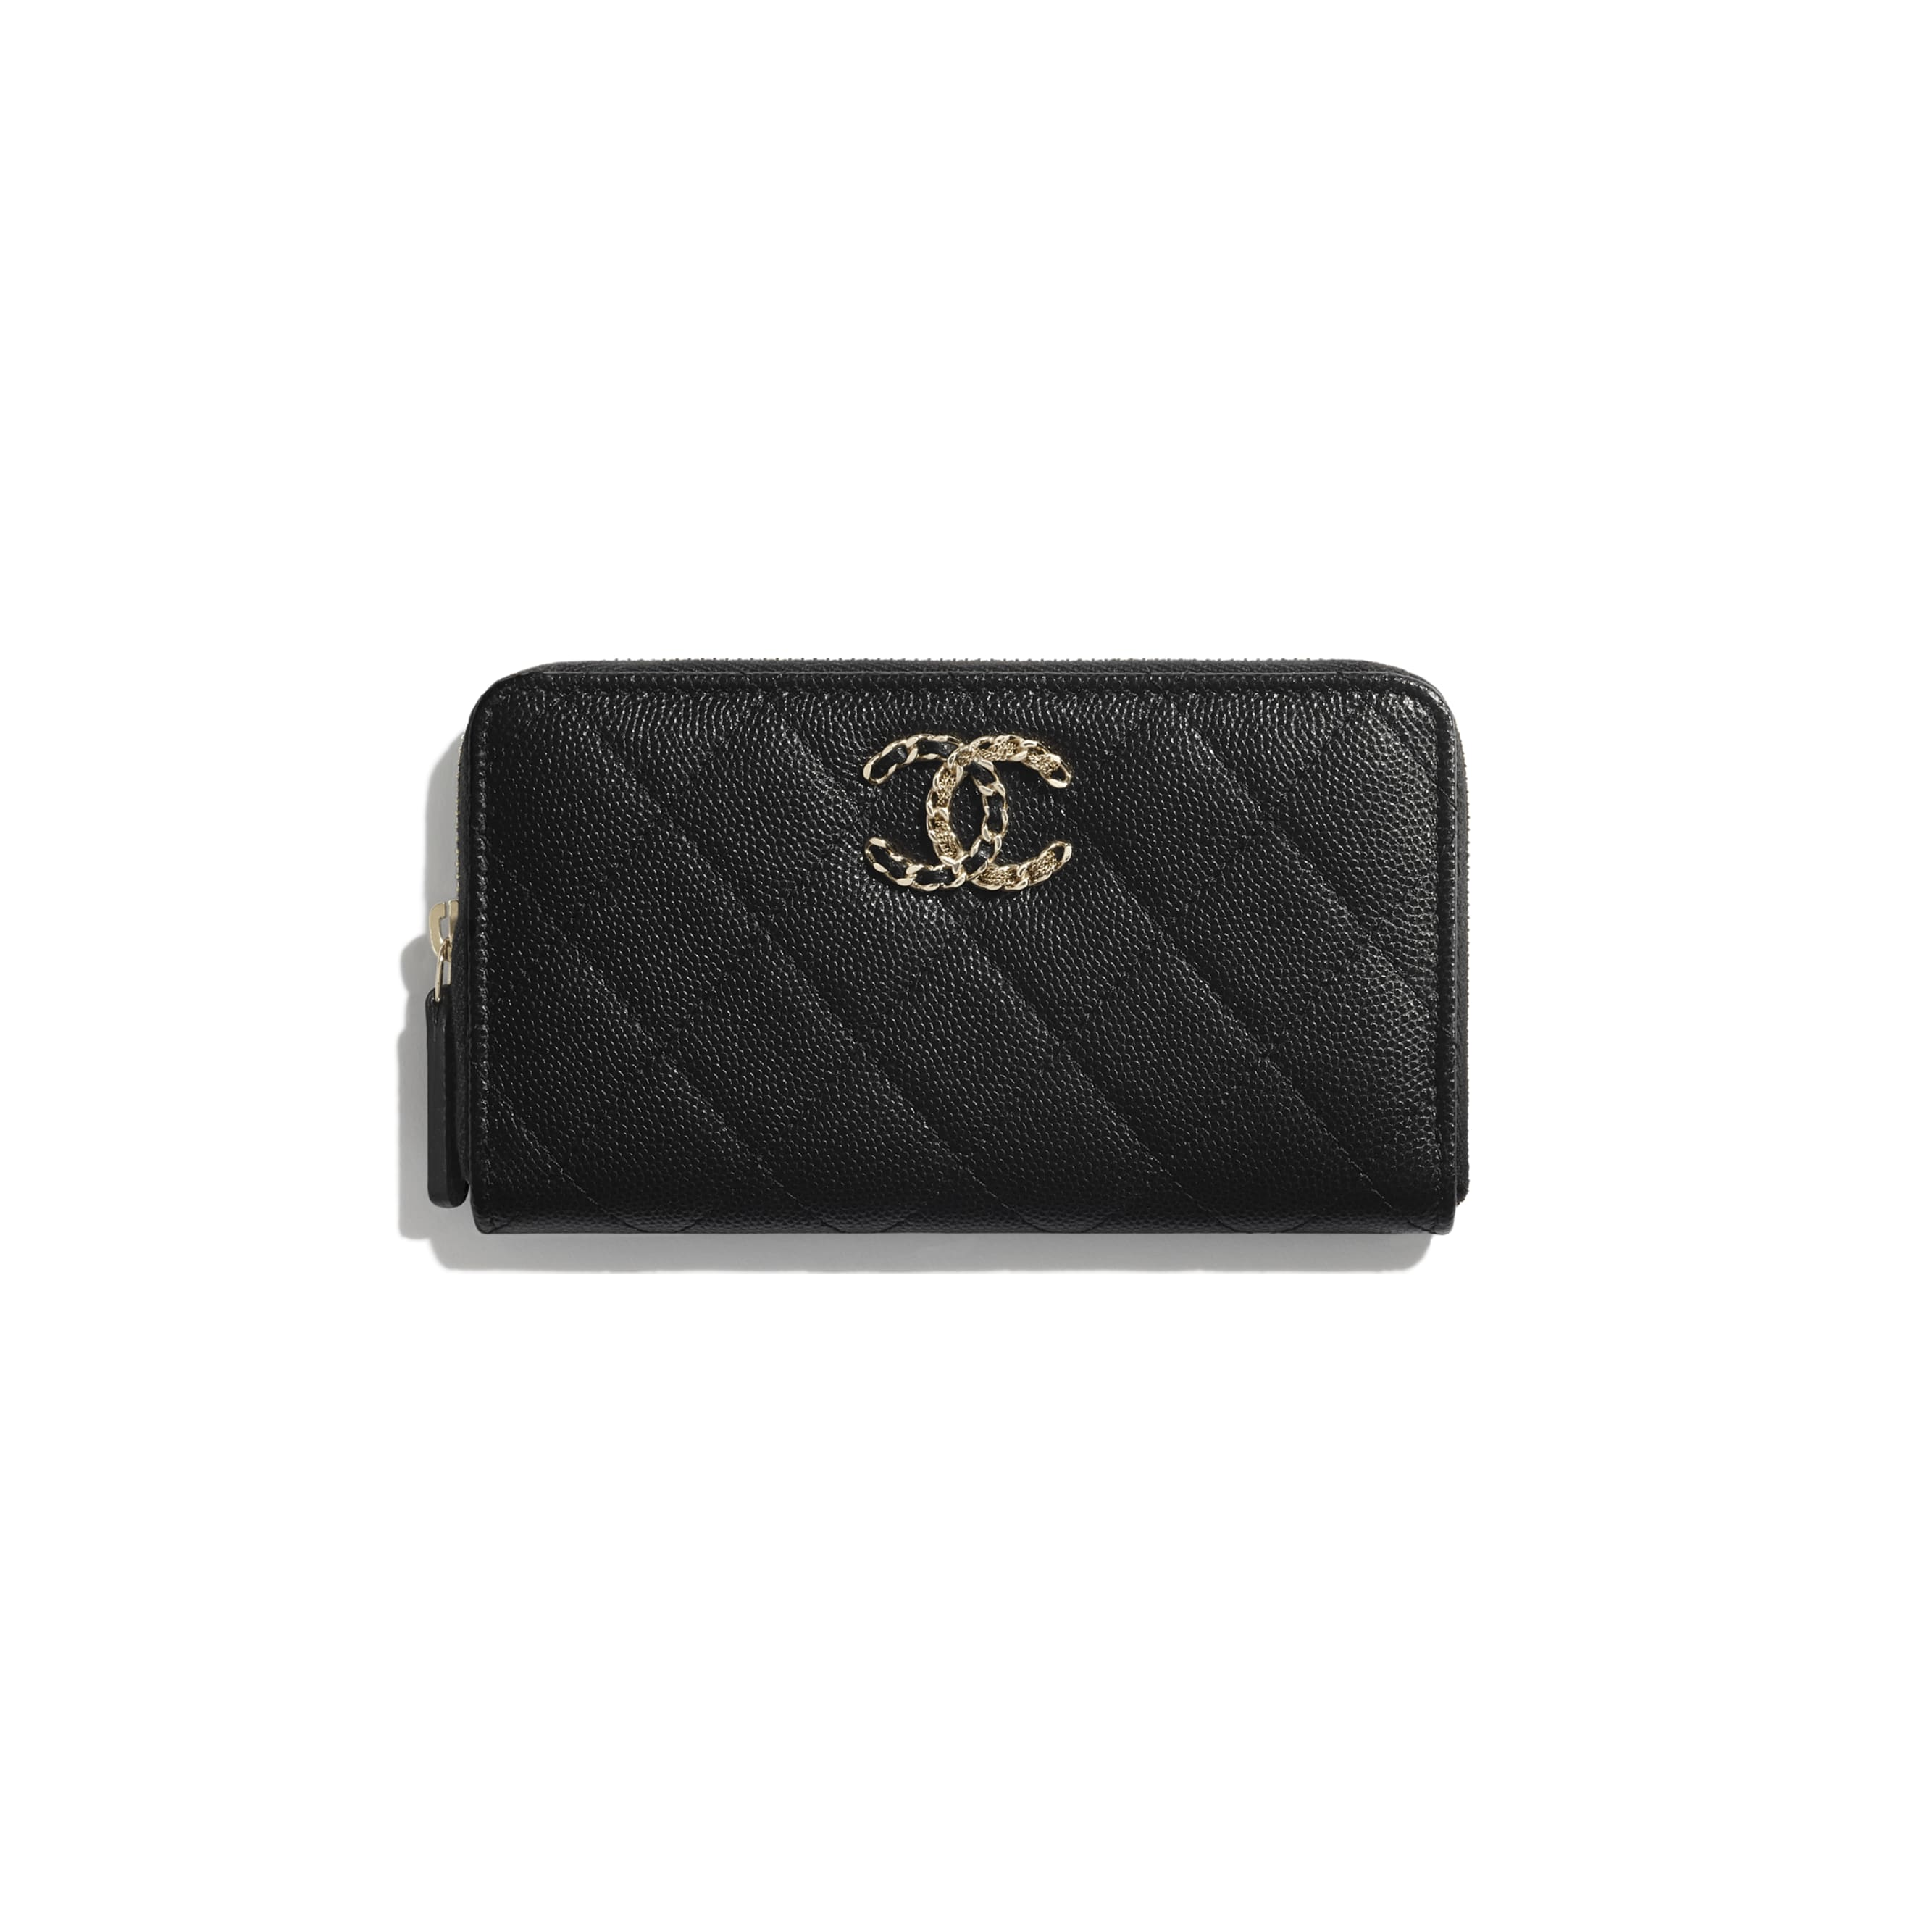 Zip Wallet - Black - Grained Calfskin & Gold-Tone Metal - CHANEL - Default view - see standard sized version